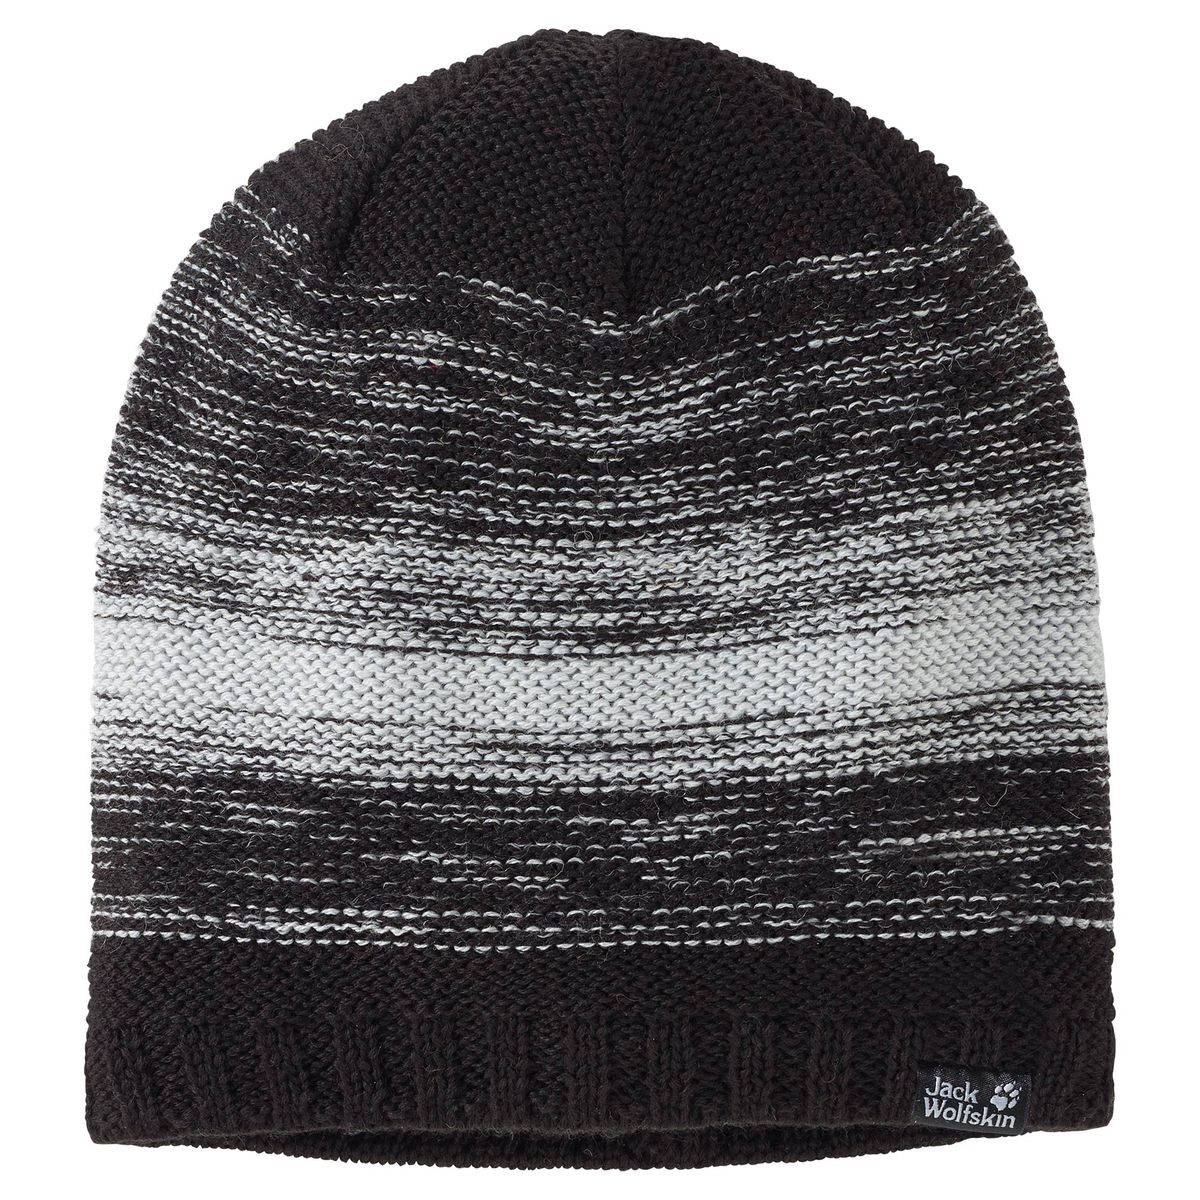 COLORFLOAT KNIT CAP hat